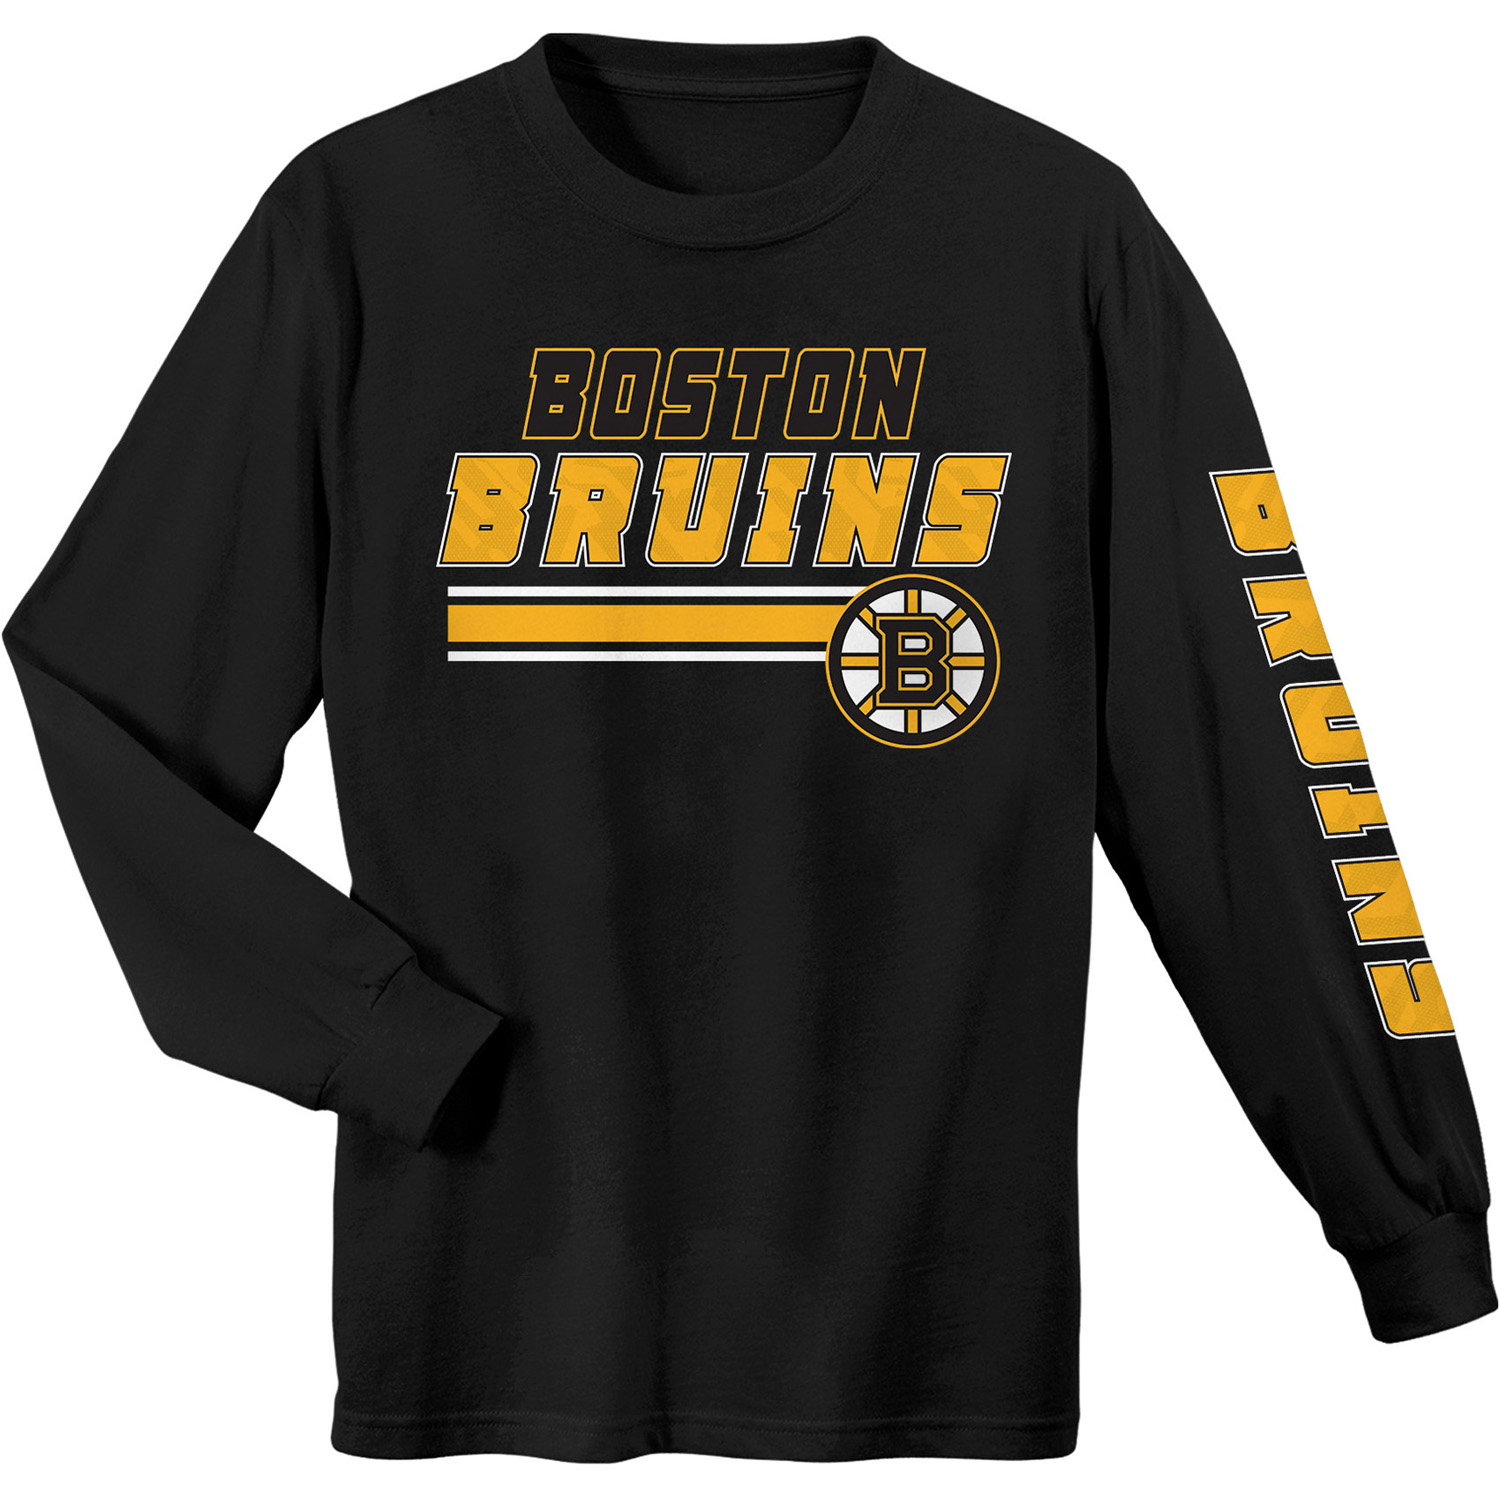 Youth Black Boston Bruins Long Sleeve T-Shirt